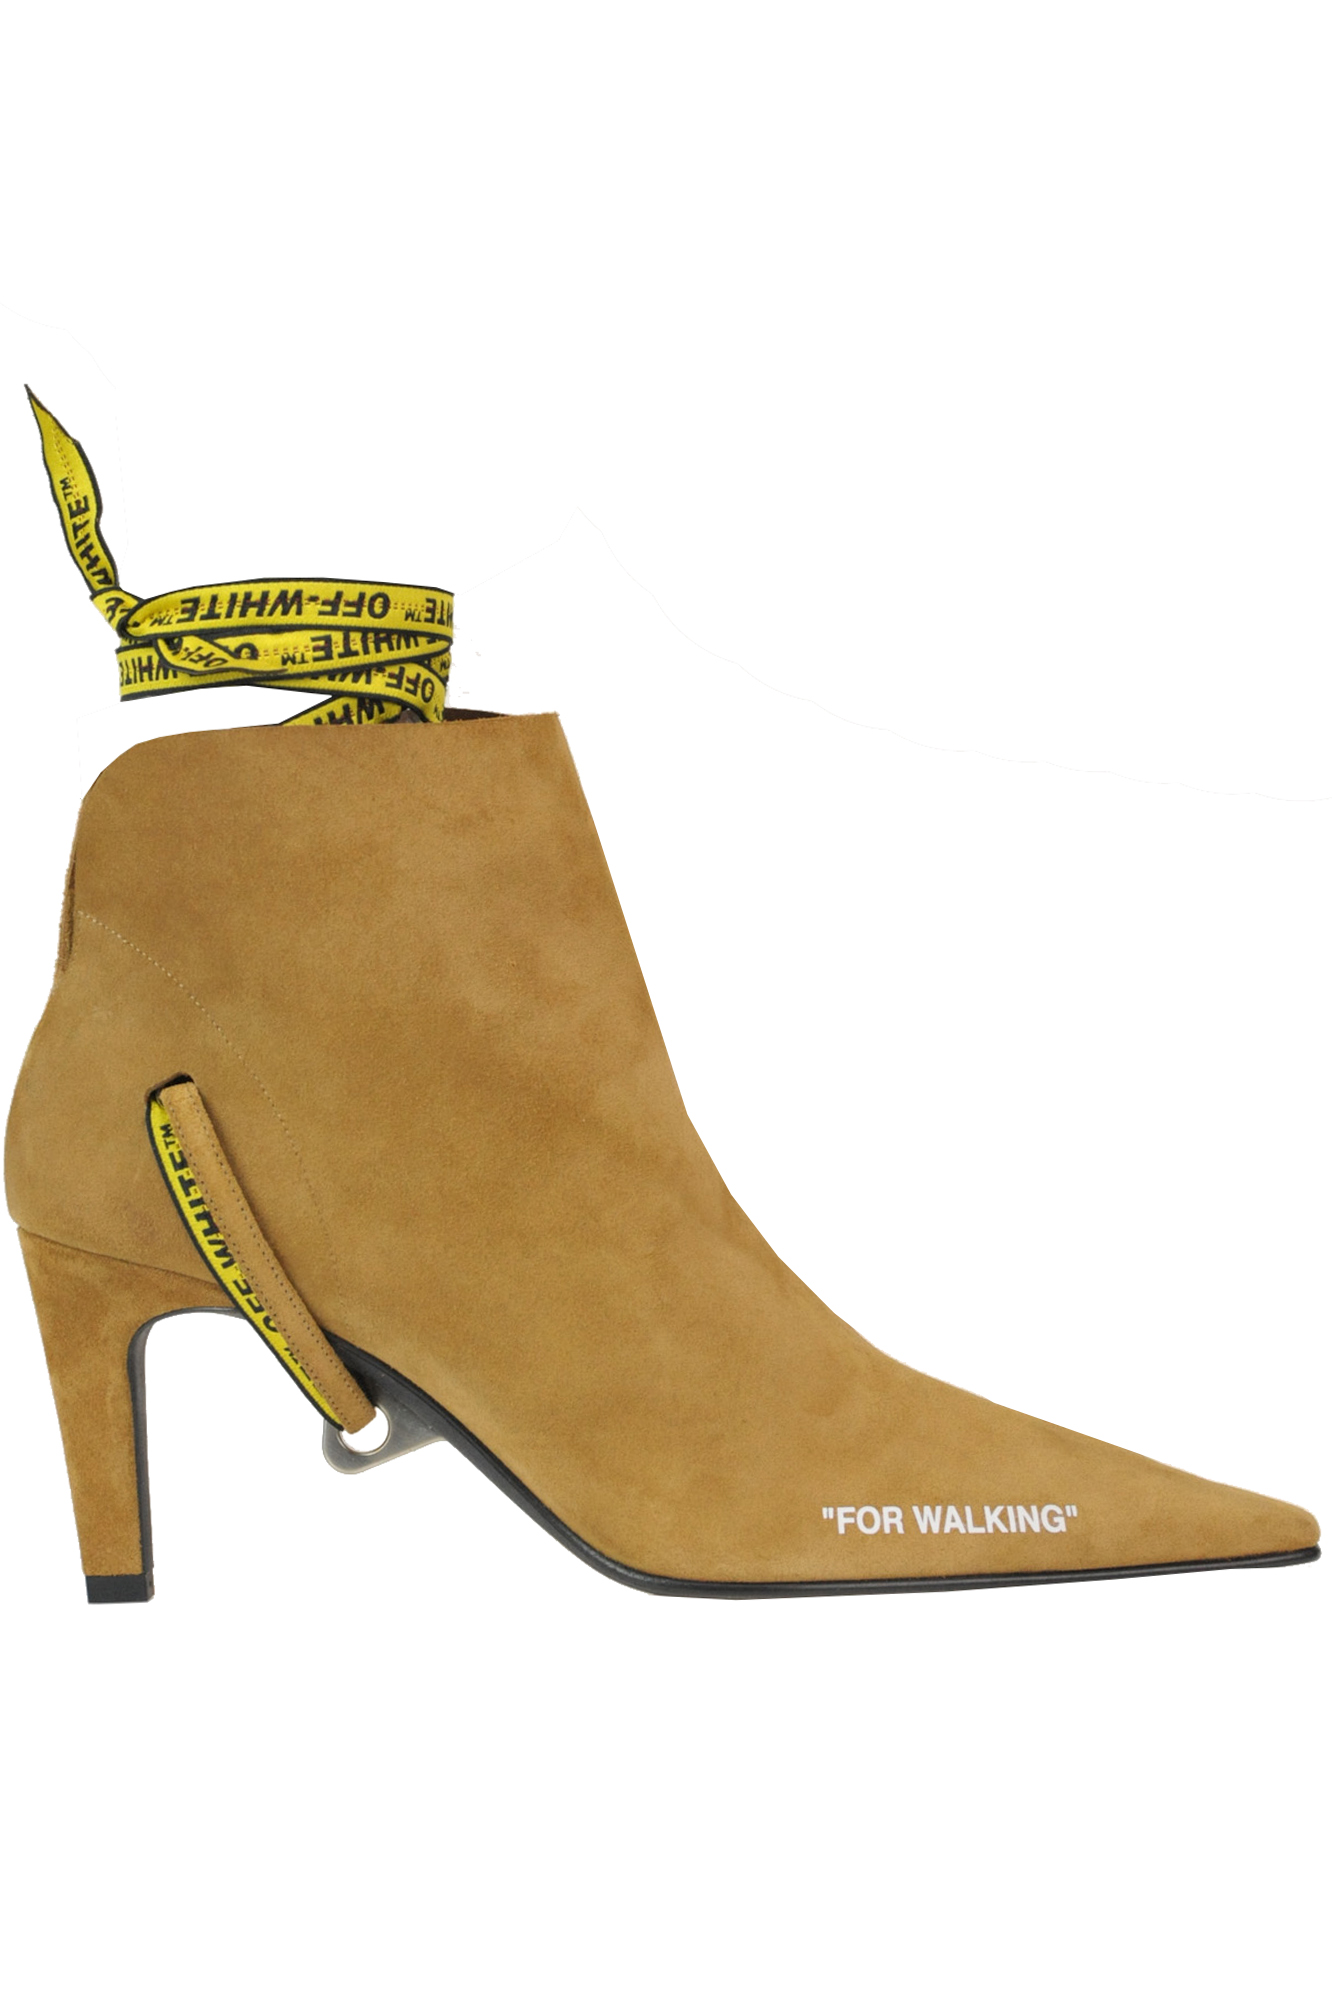 Off-White 'For Walking' Suede Ankle-Boots In Light Brown